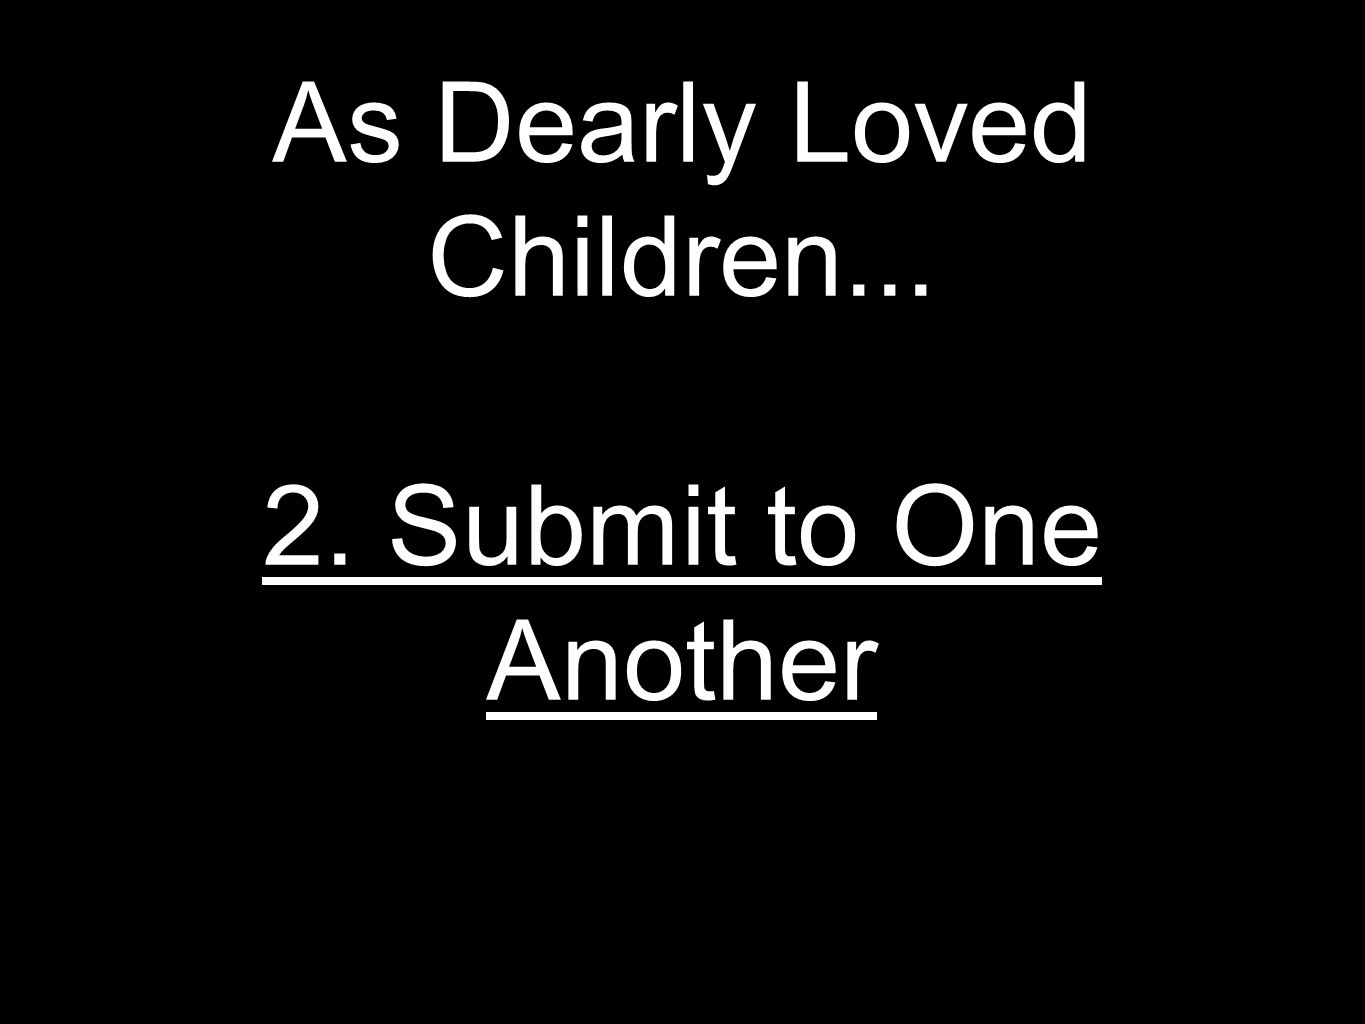 As Dearly Loved Children Submit to One Another